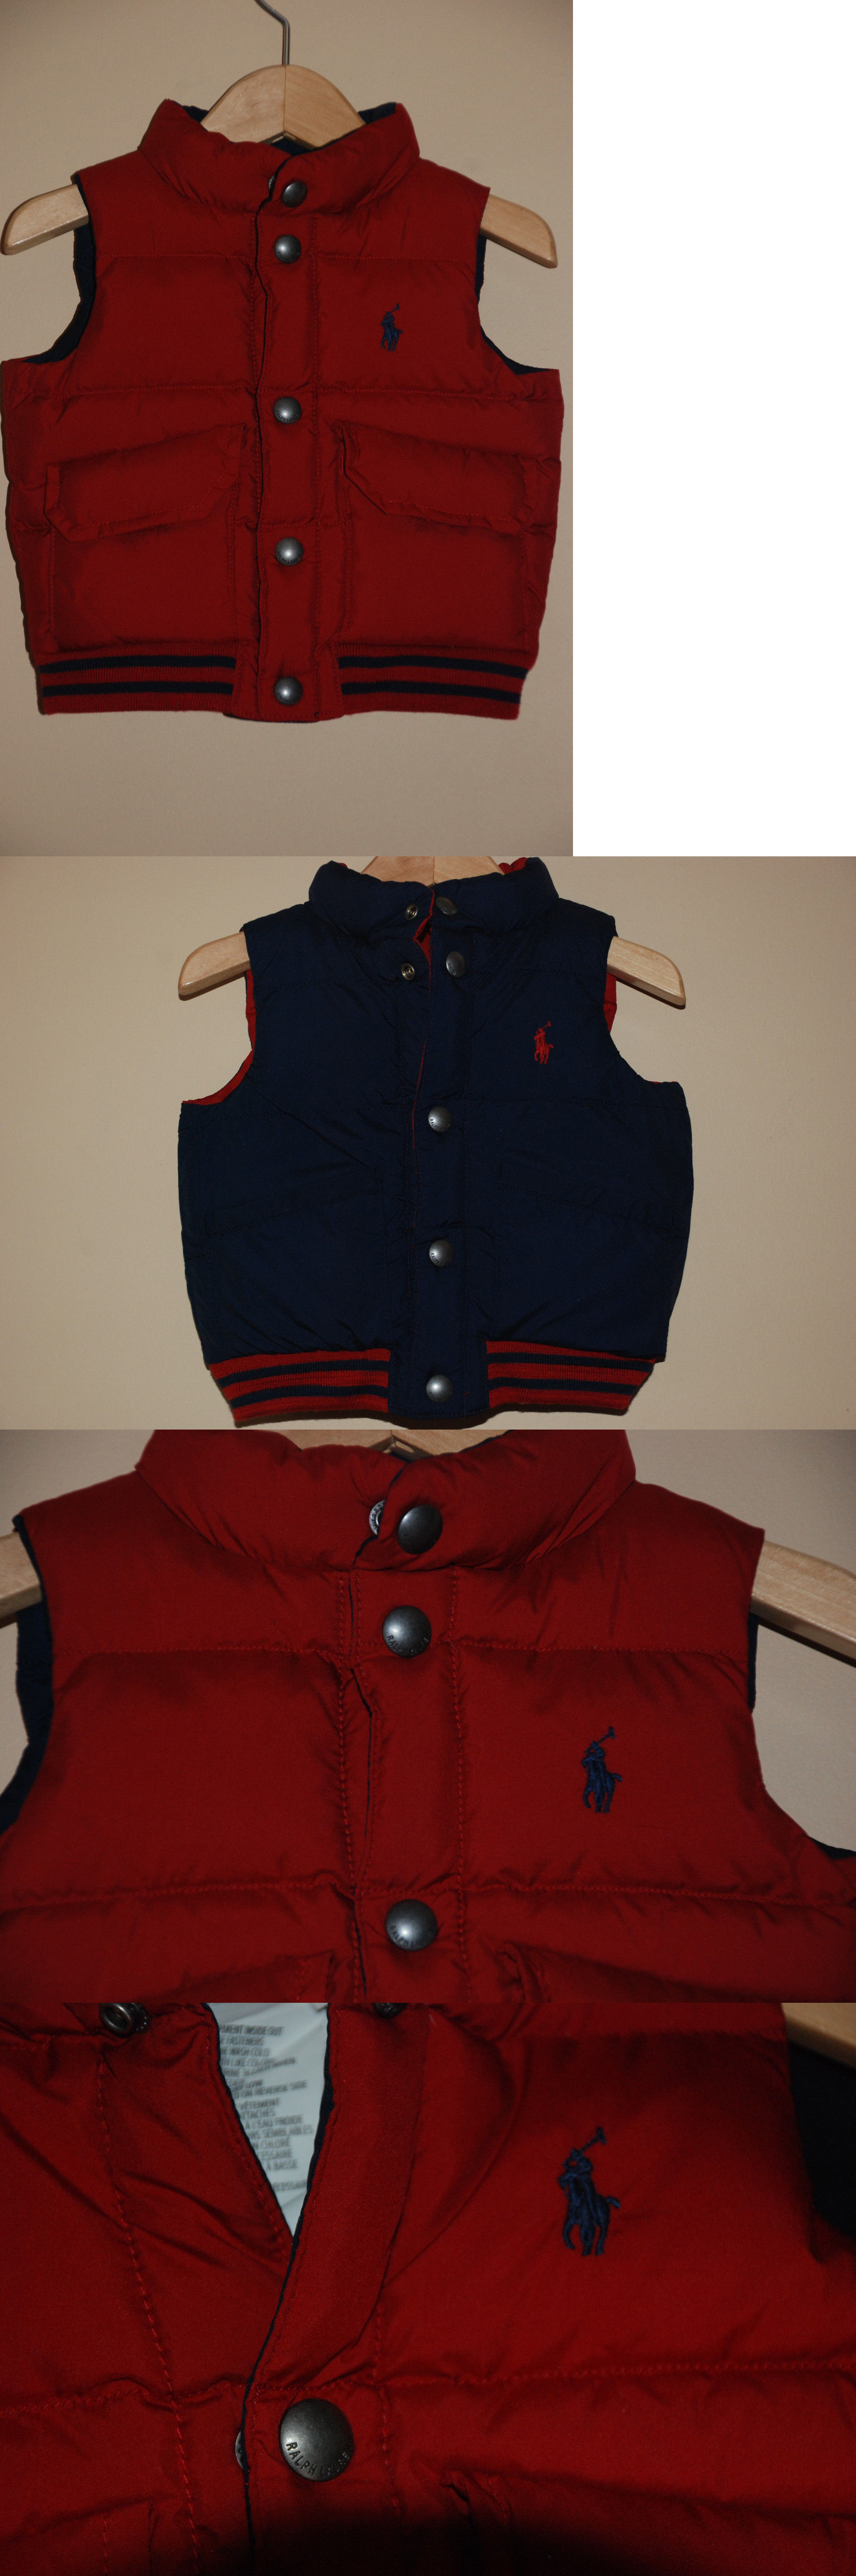 2010aee87915 Outerwear 147324  New Baby Boy S Polo Ralph Lauren Reversible Navy ...